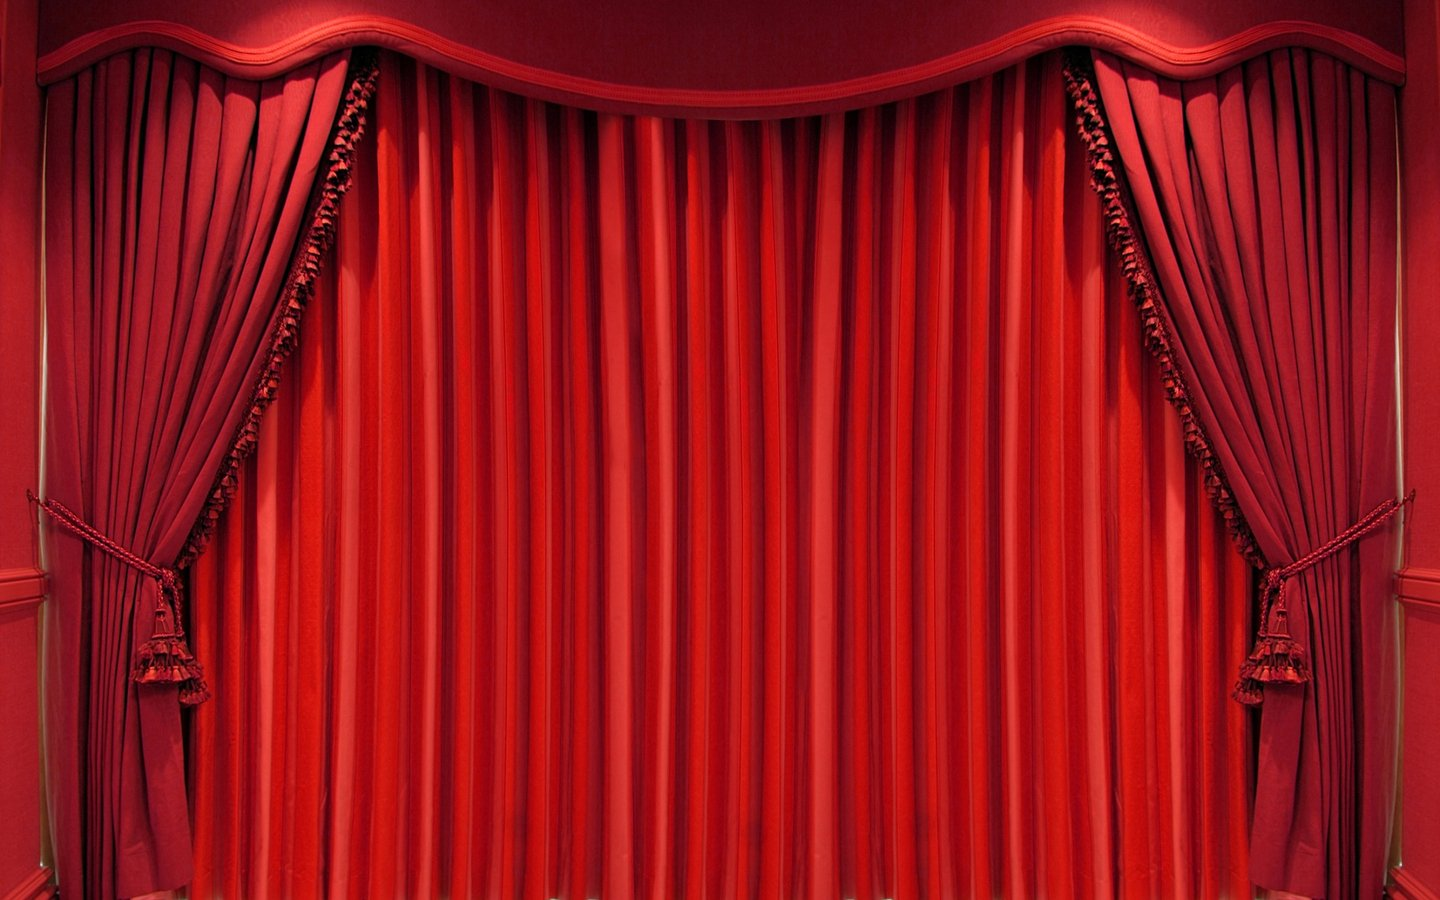 Red Curtain Background Powerpoint - Stage curtain wallpaper wallpapersafari theater powerpoint template